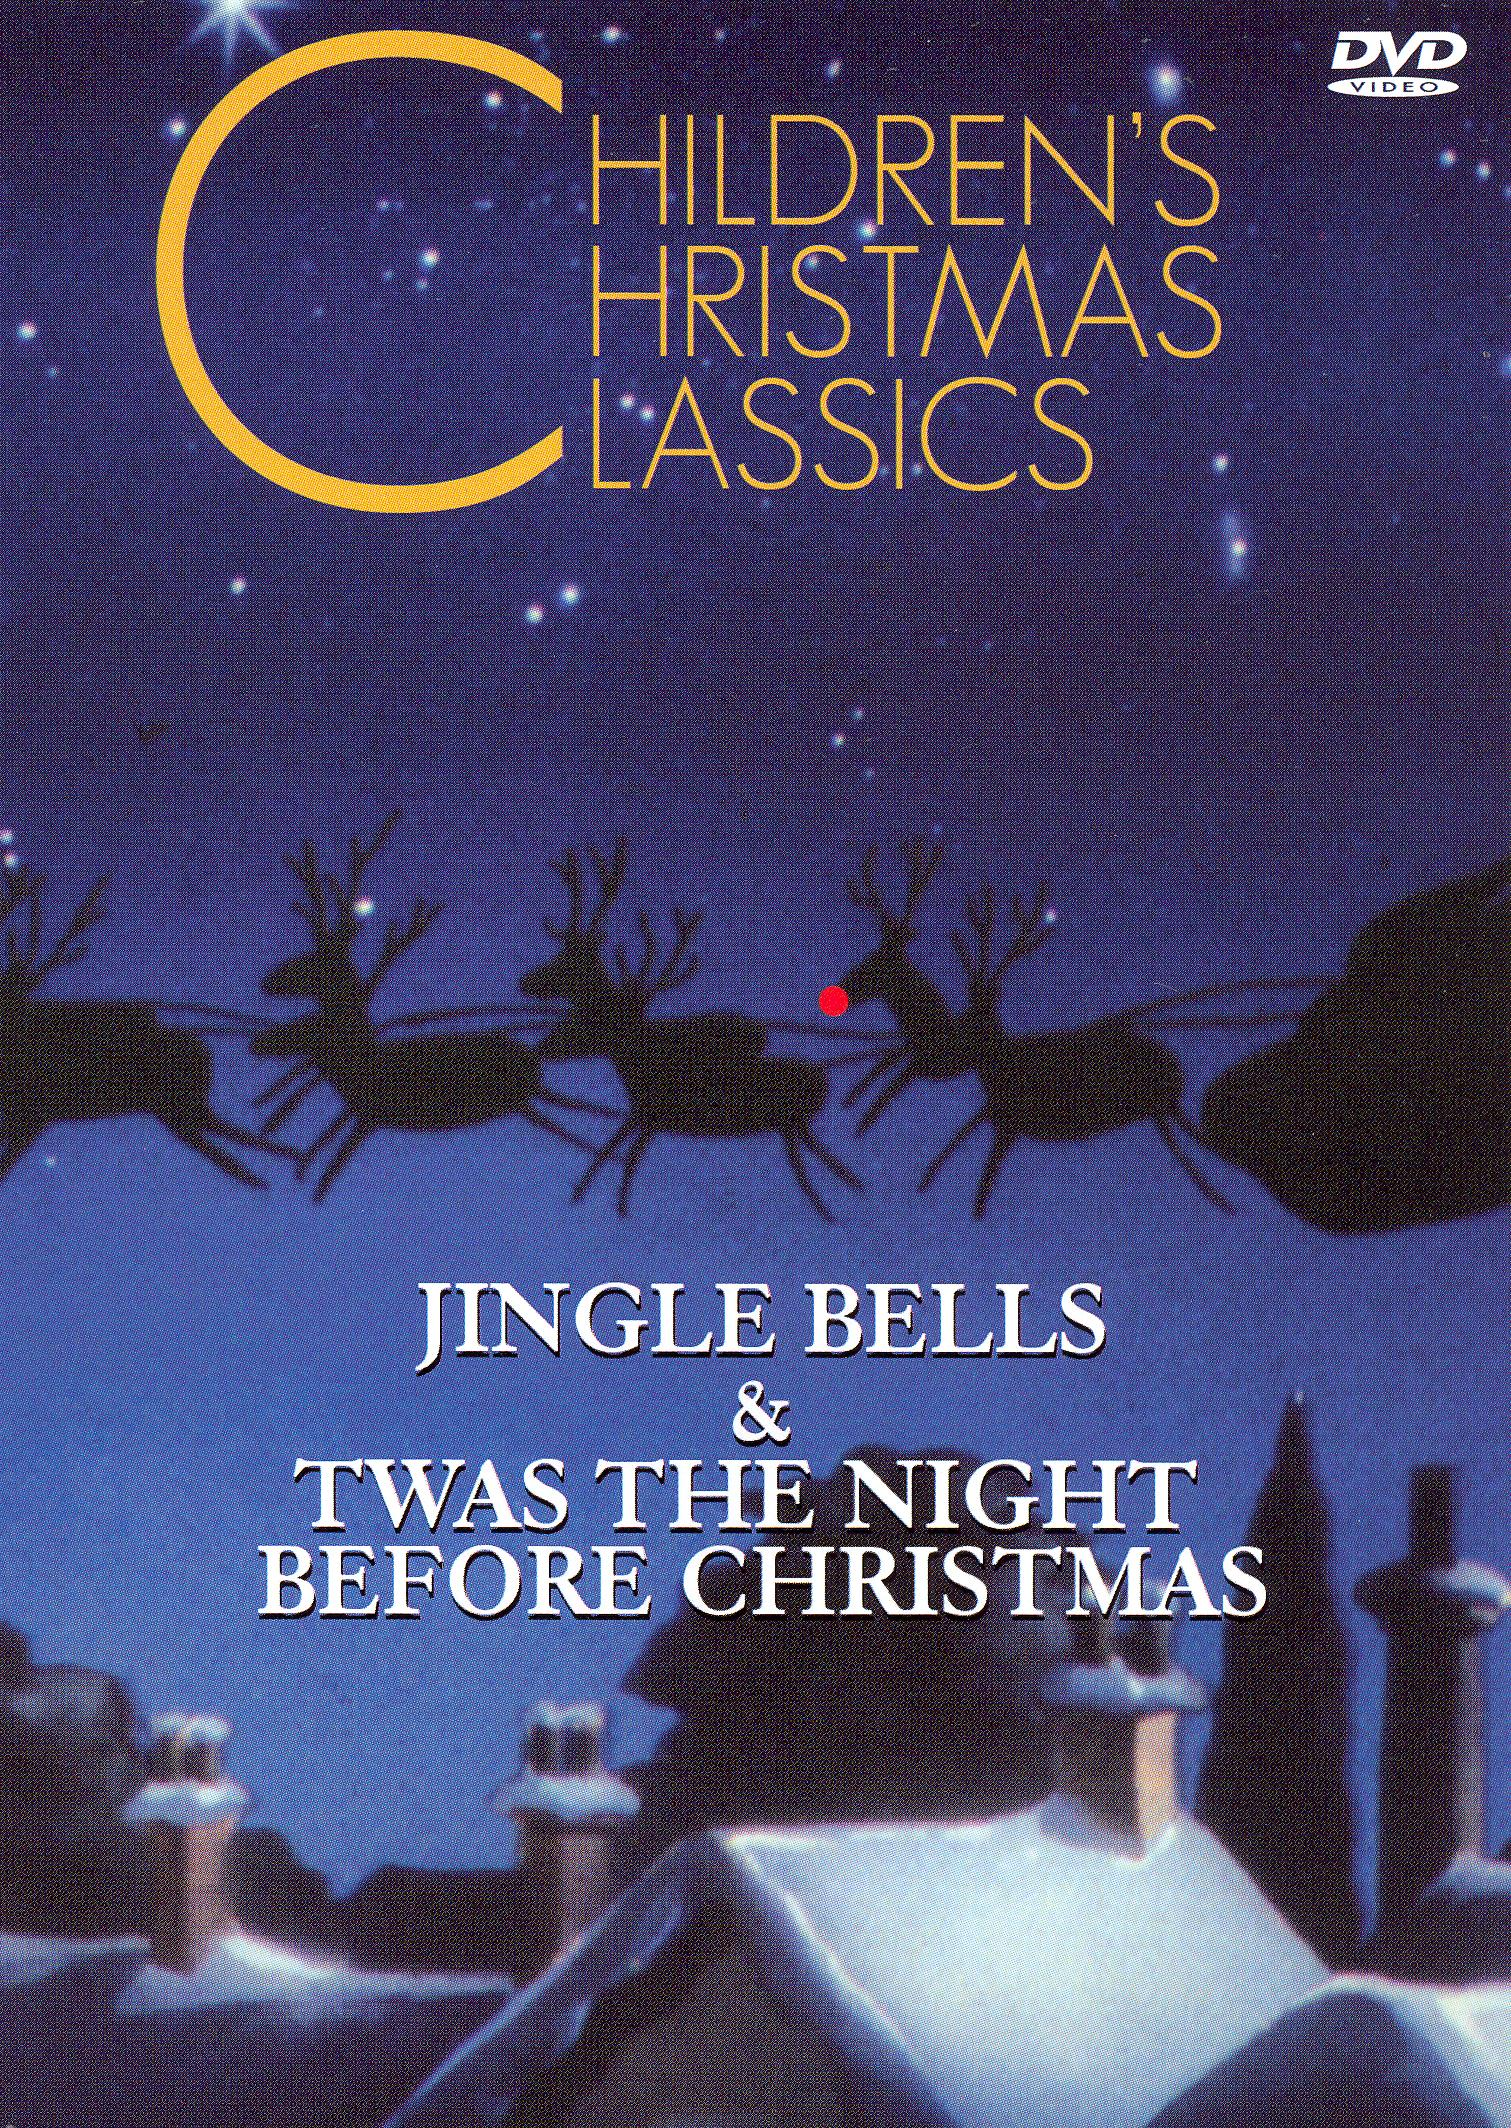 Children's Christmas Classics: Jingle Bells & 'Twas the Night Before Christmas